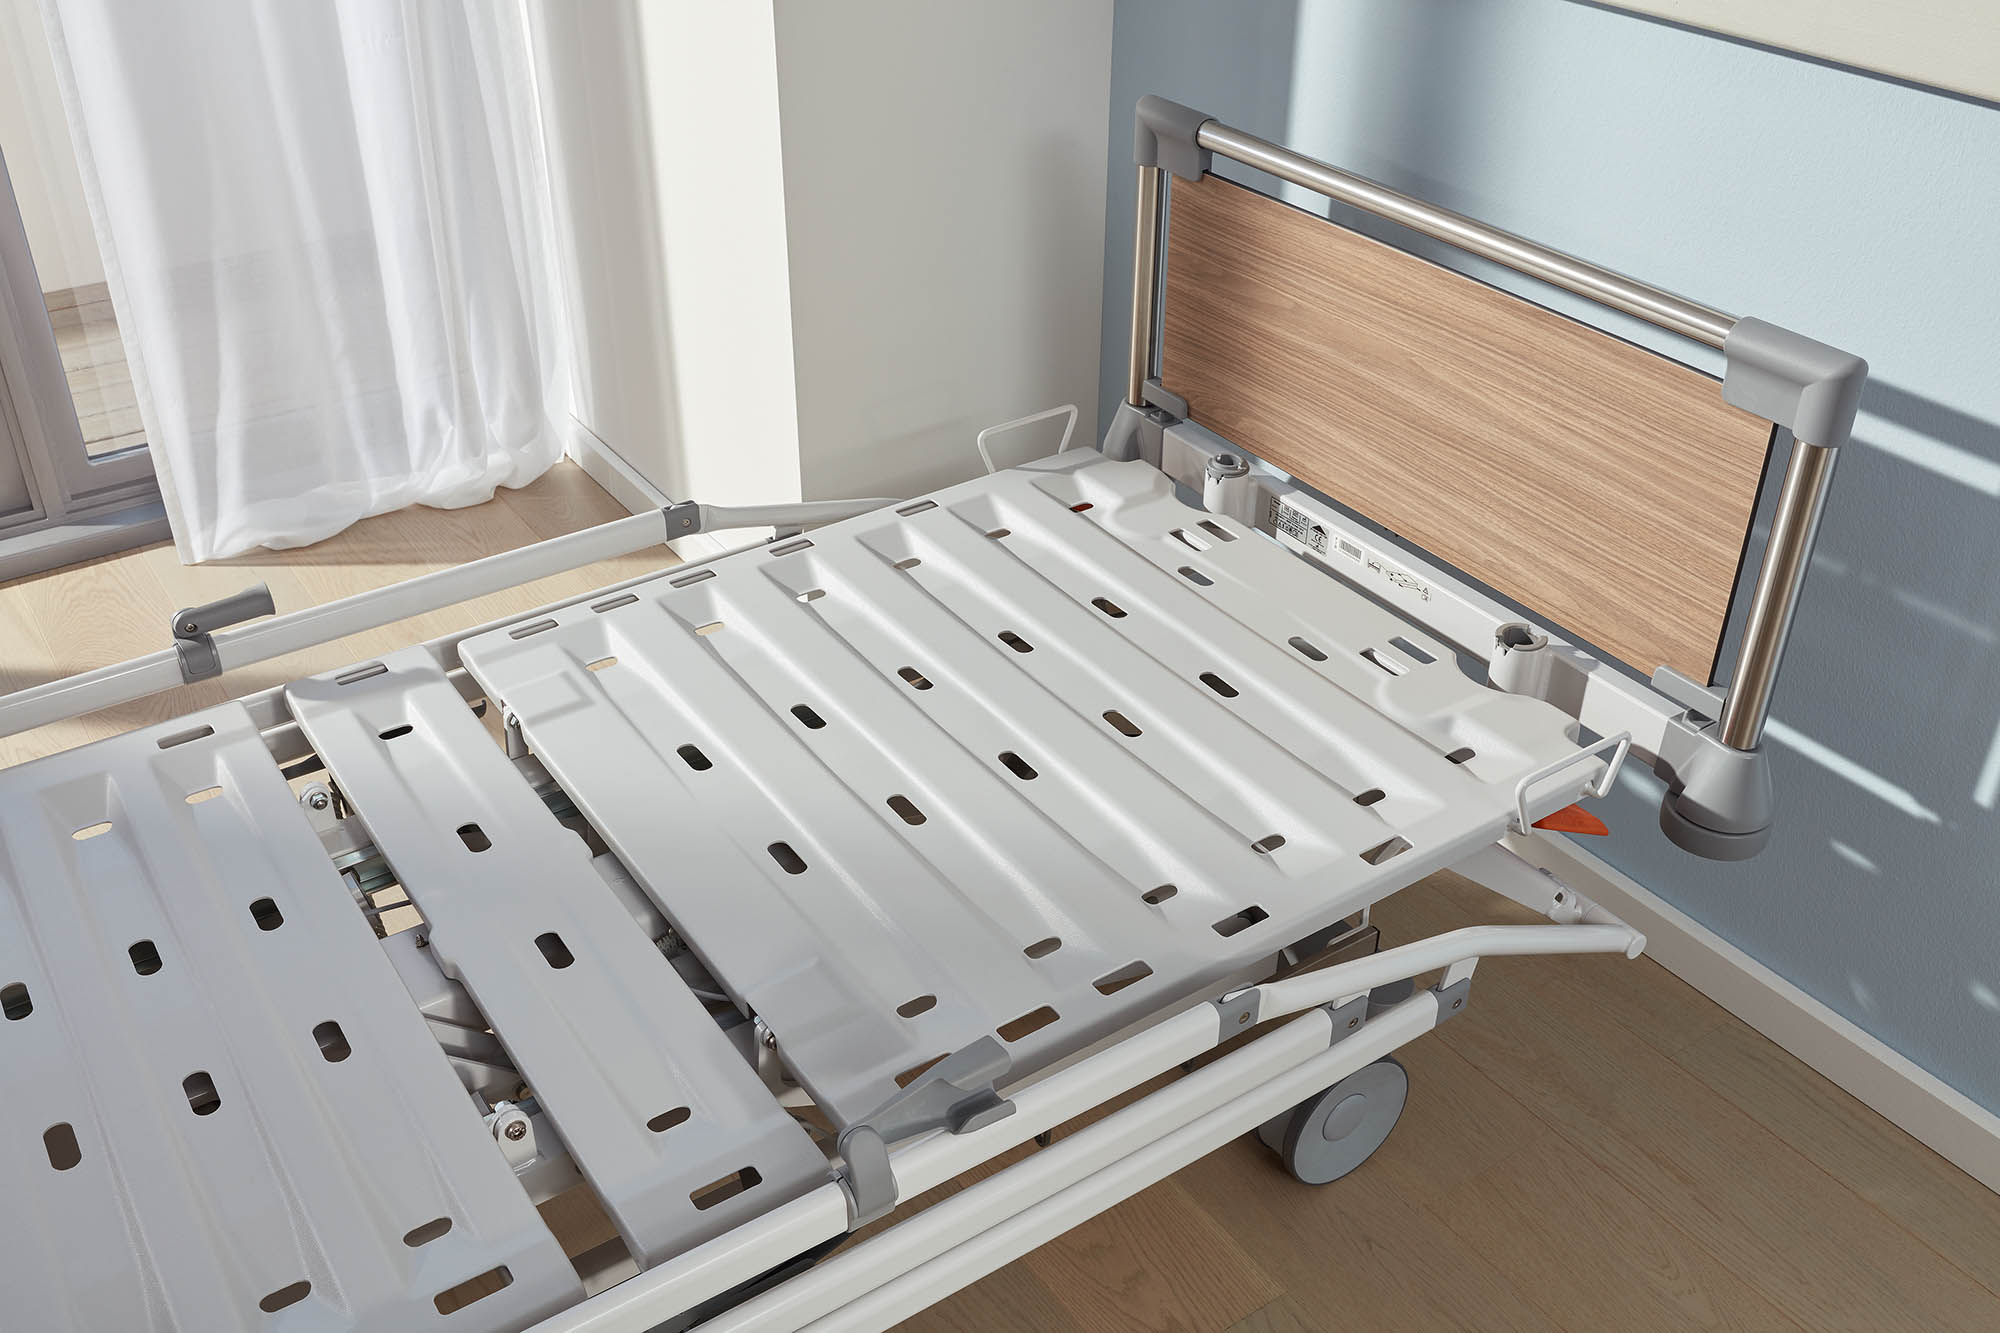 Hygiene mattress base of the Evario hospital bed